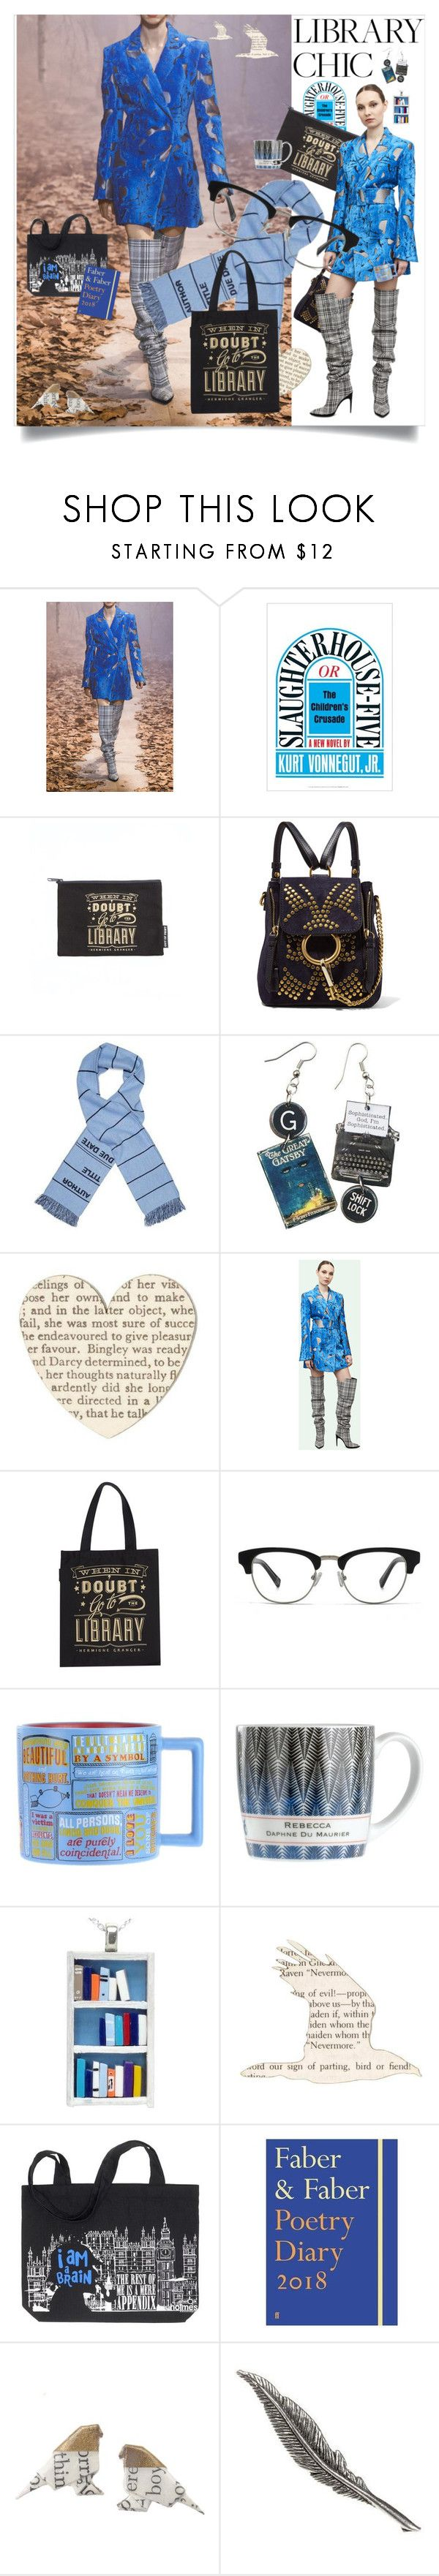 """""""When in Doubt: Go to the Library"""" by haikuandkysses ❤ liked on Polyvore featuring Off-White, Chloé, HOOK LDN, librarychic, off_white, offwhite_blue_coat, off_white_tartan_boots and offwhiteAW2017"""